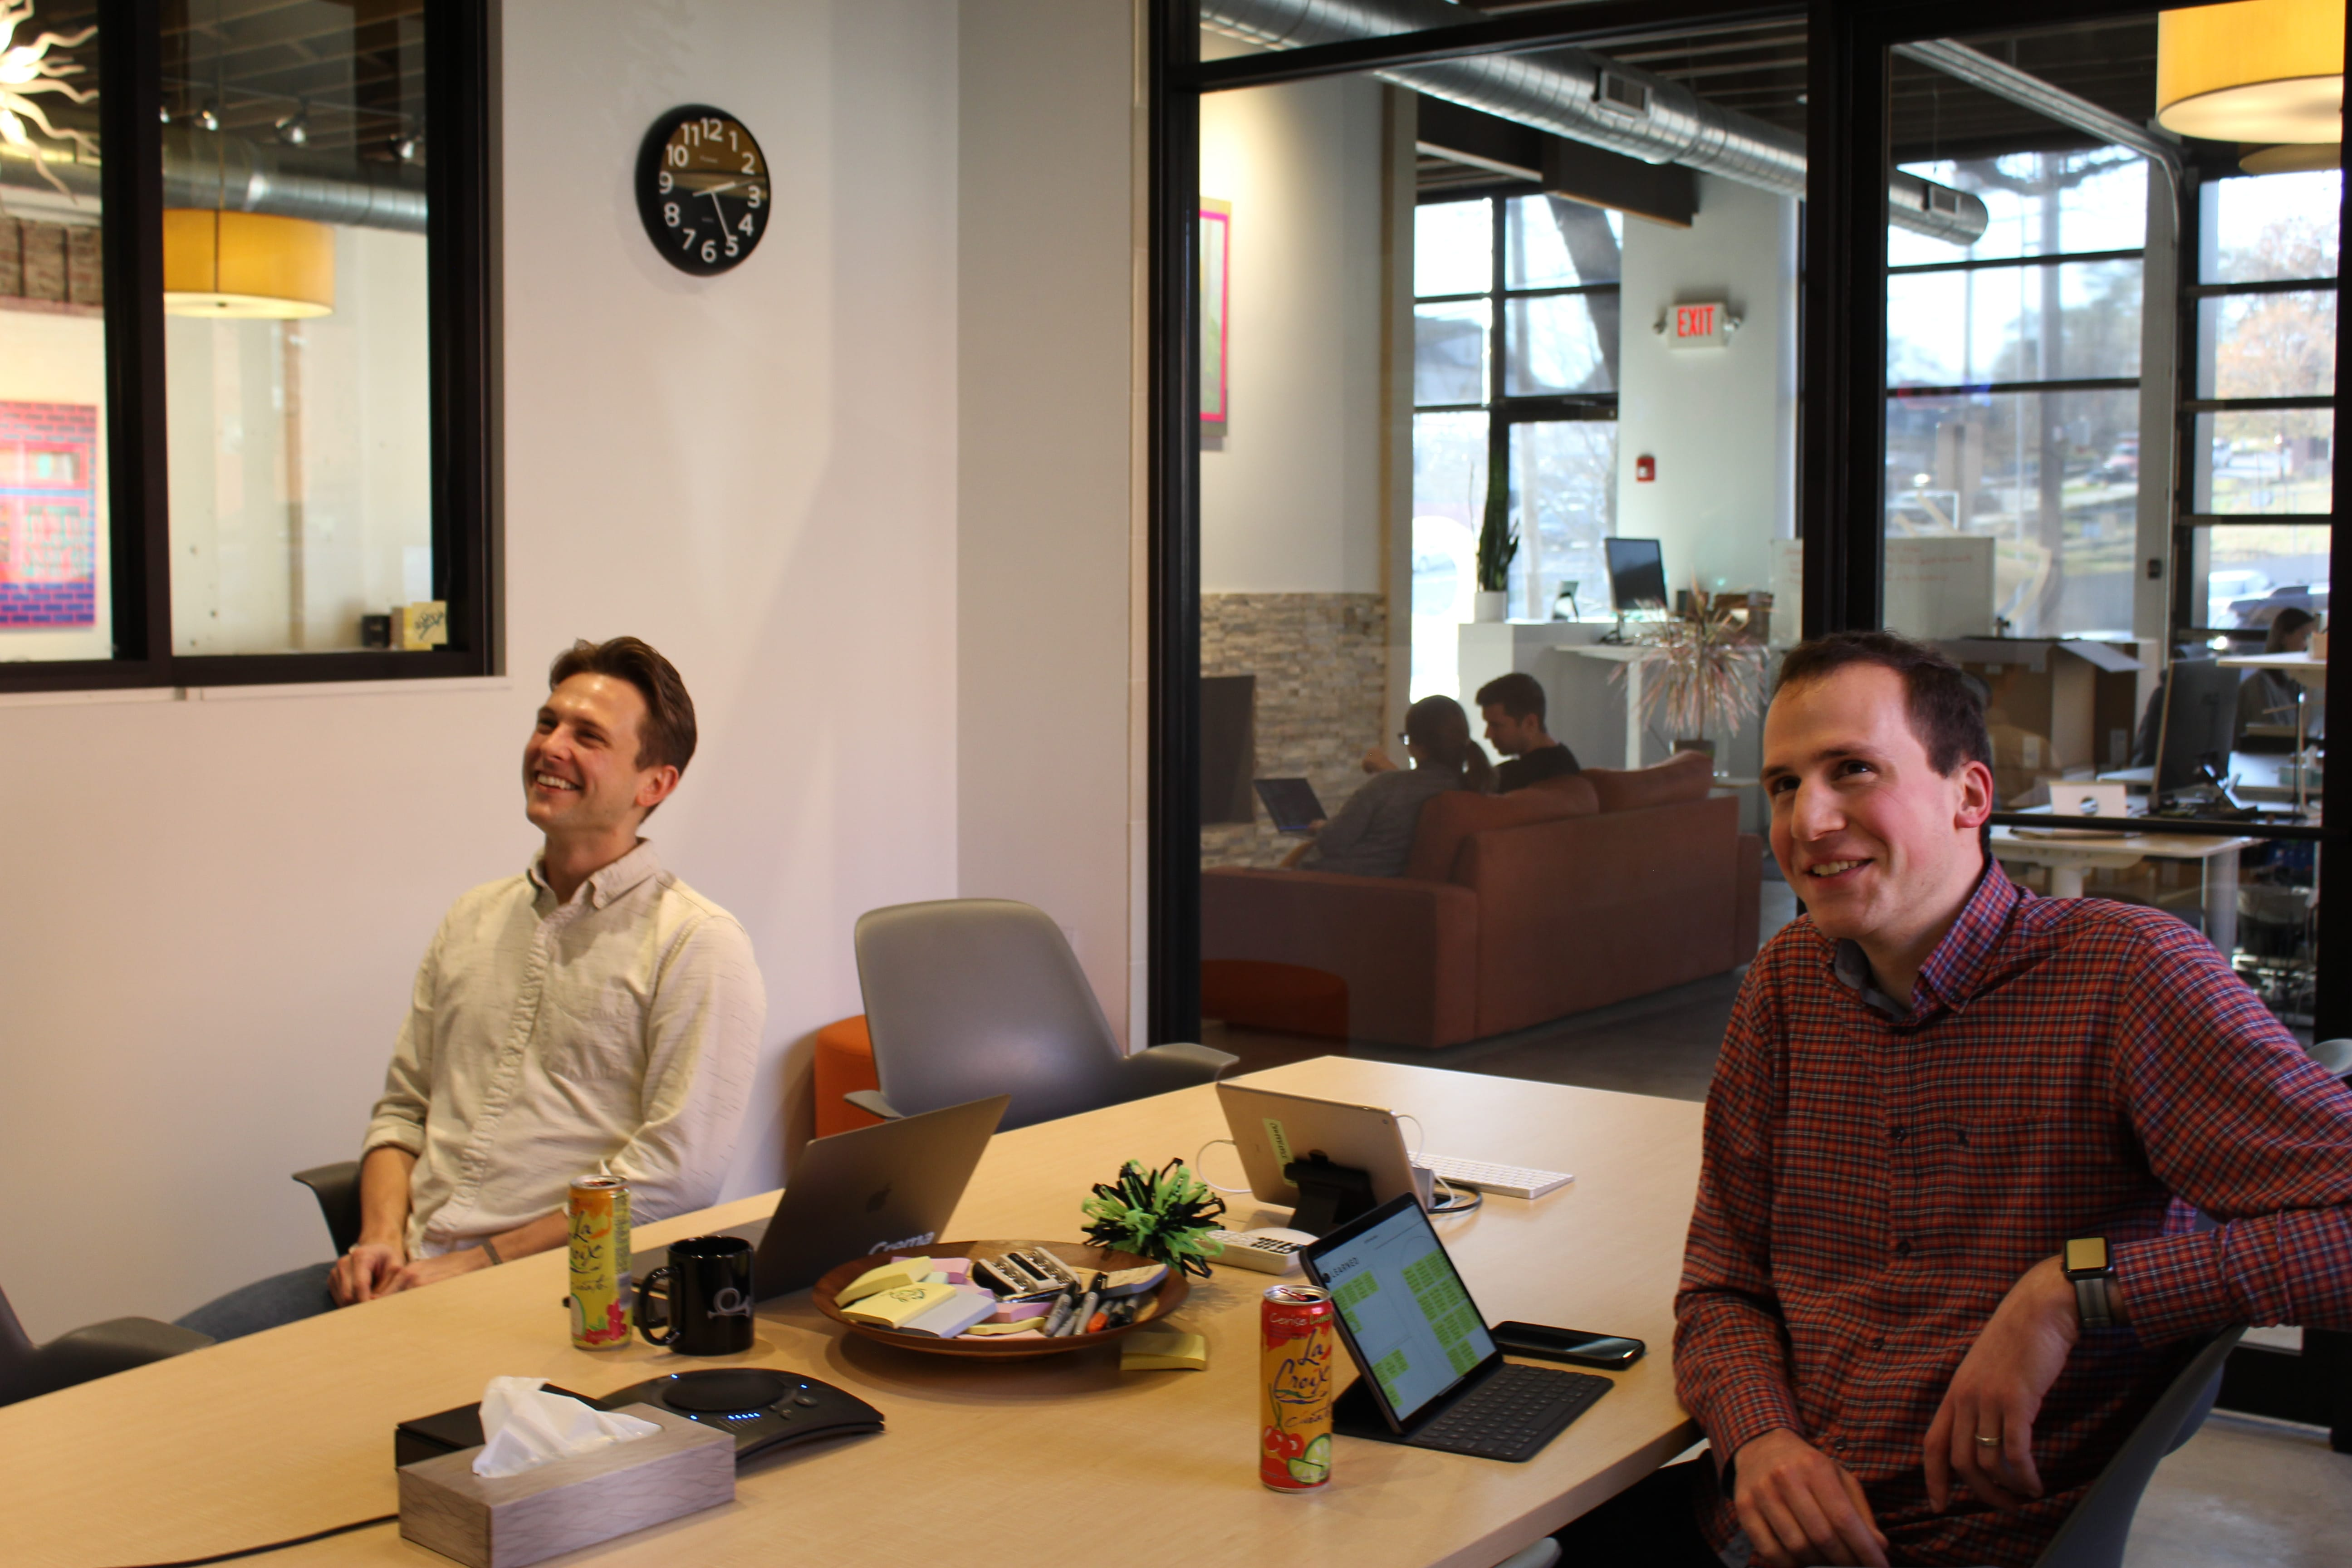 product managers in room smiling during meeting